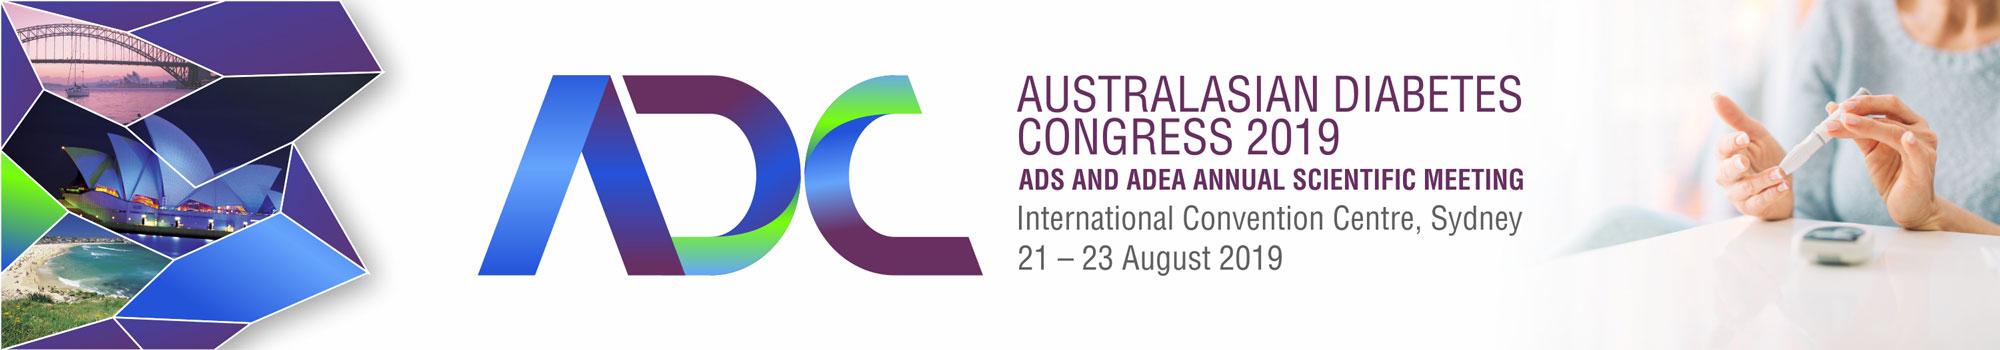 Australasian Diabetes Congress 2019